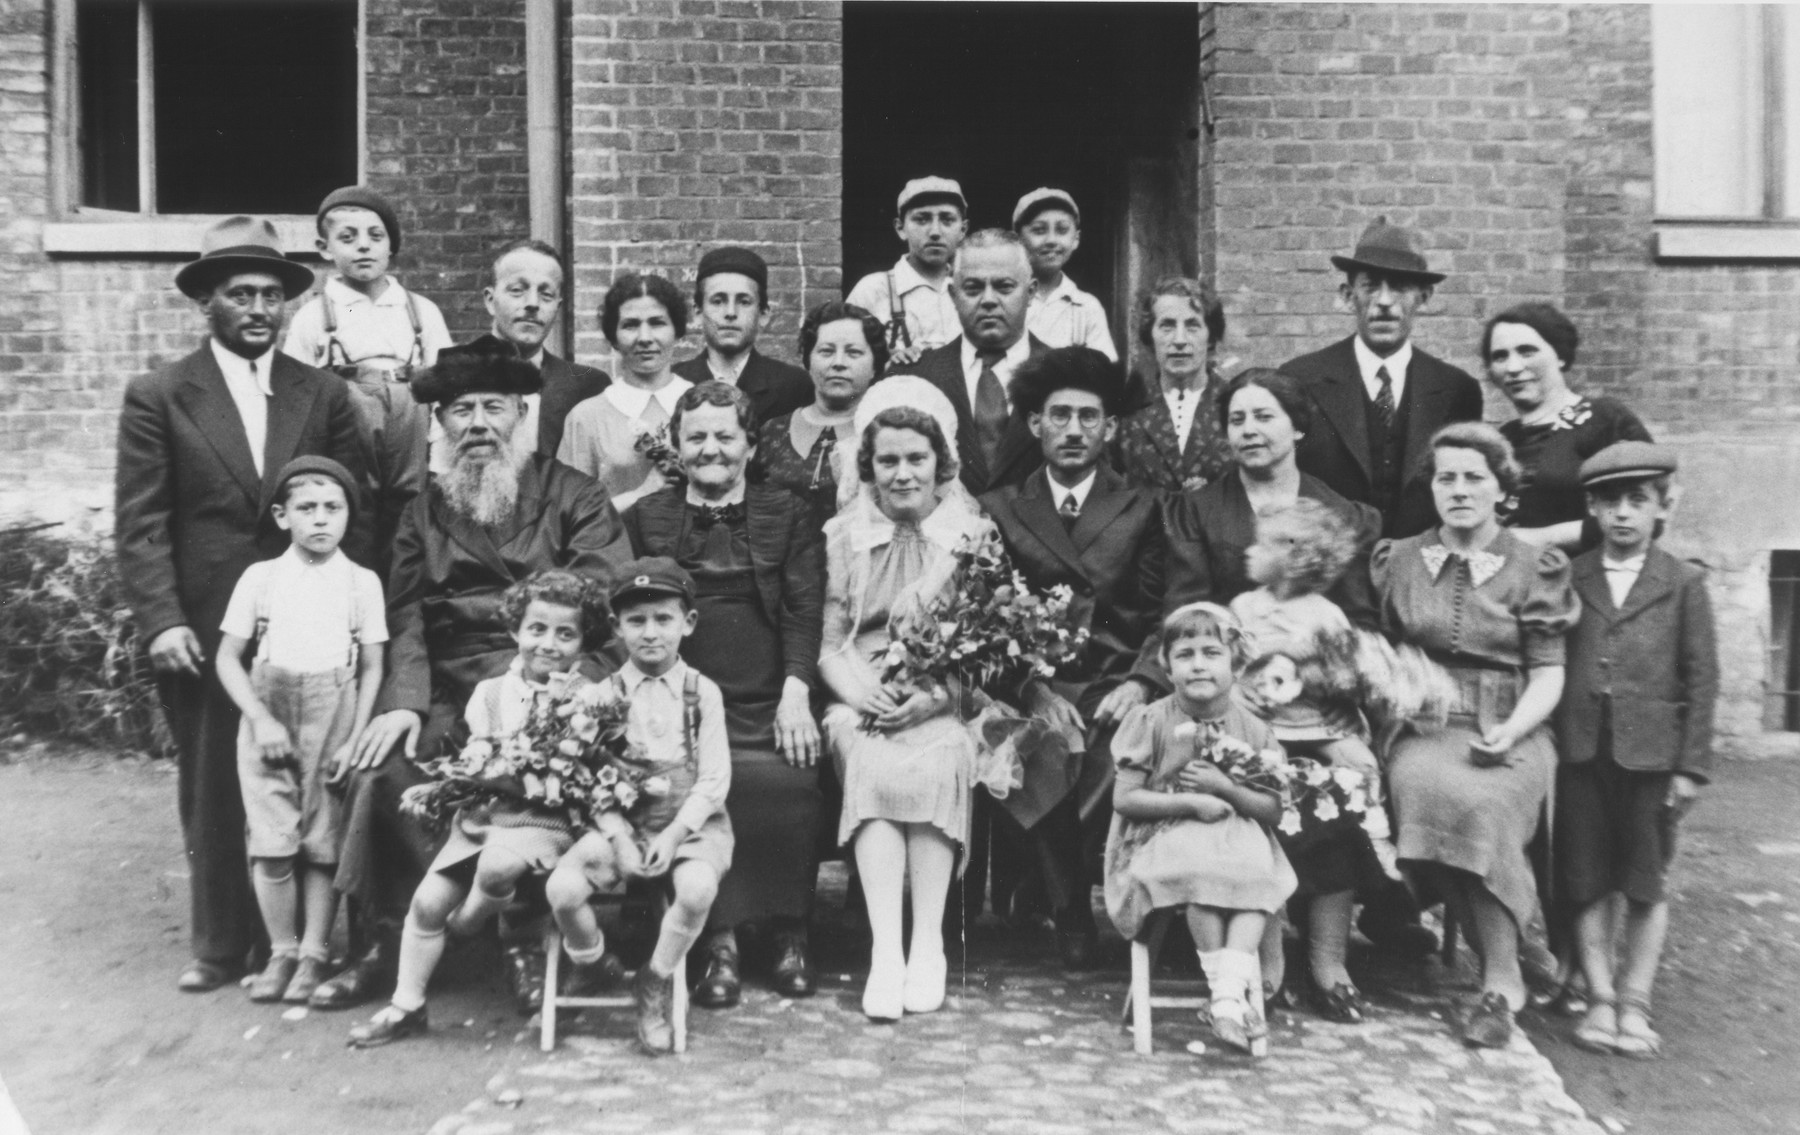 The Bachner family poses for a group shot at the wedding of Rifcia Bachner and Maier Taus.    Channa Bachner perished along with her seven children and twenty-six grandchildren in Auschwitz.